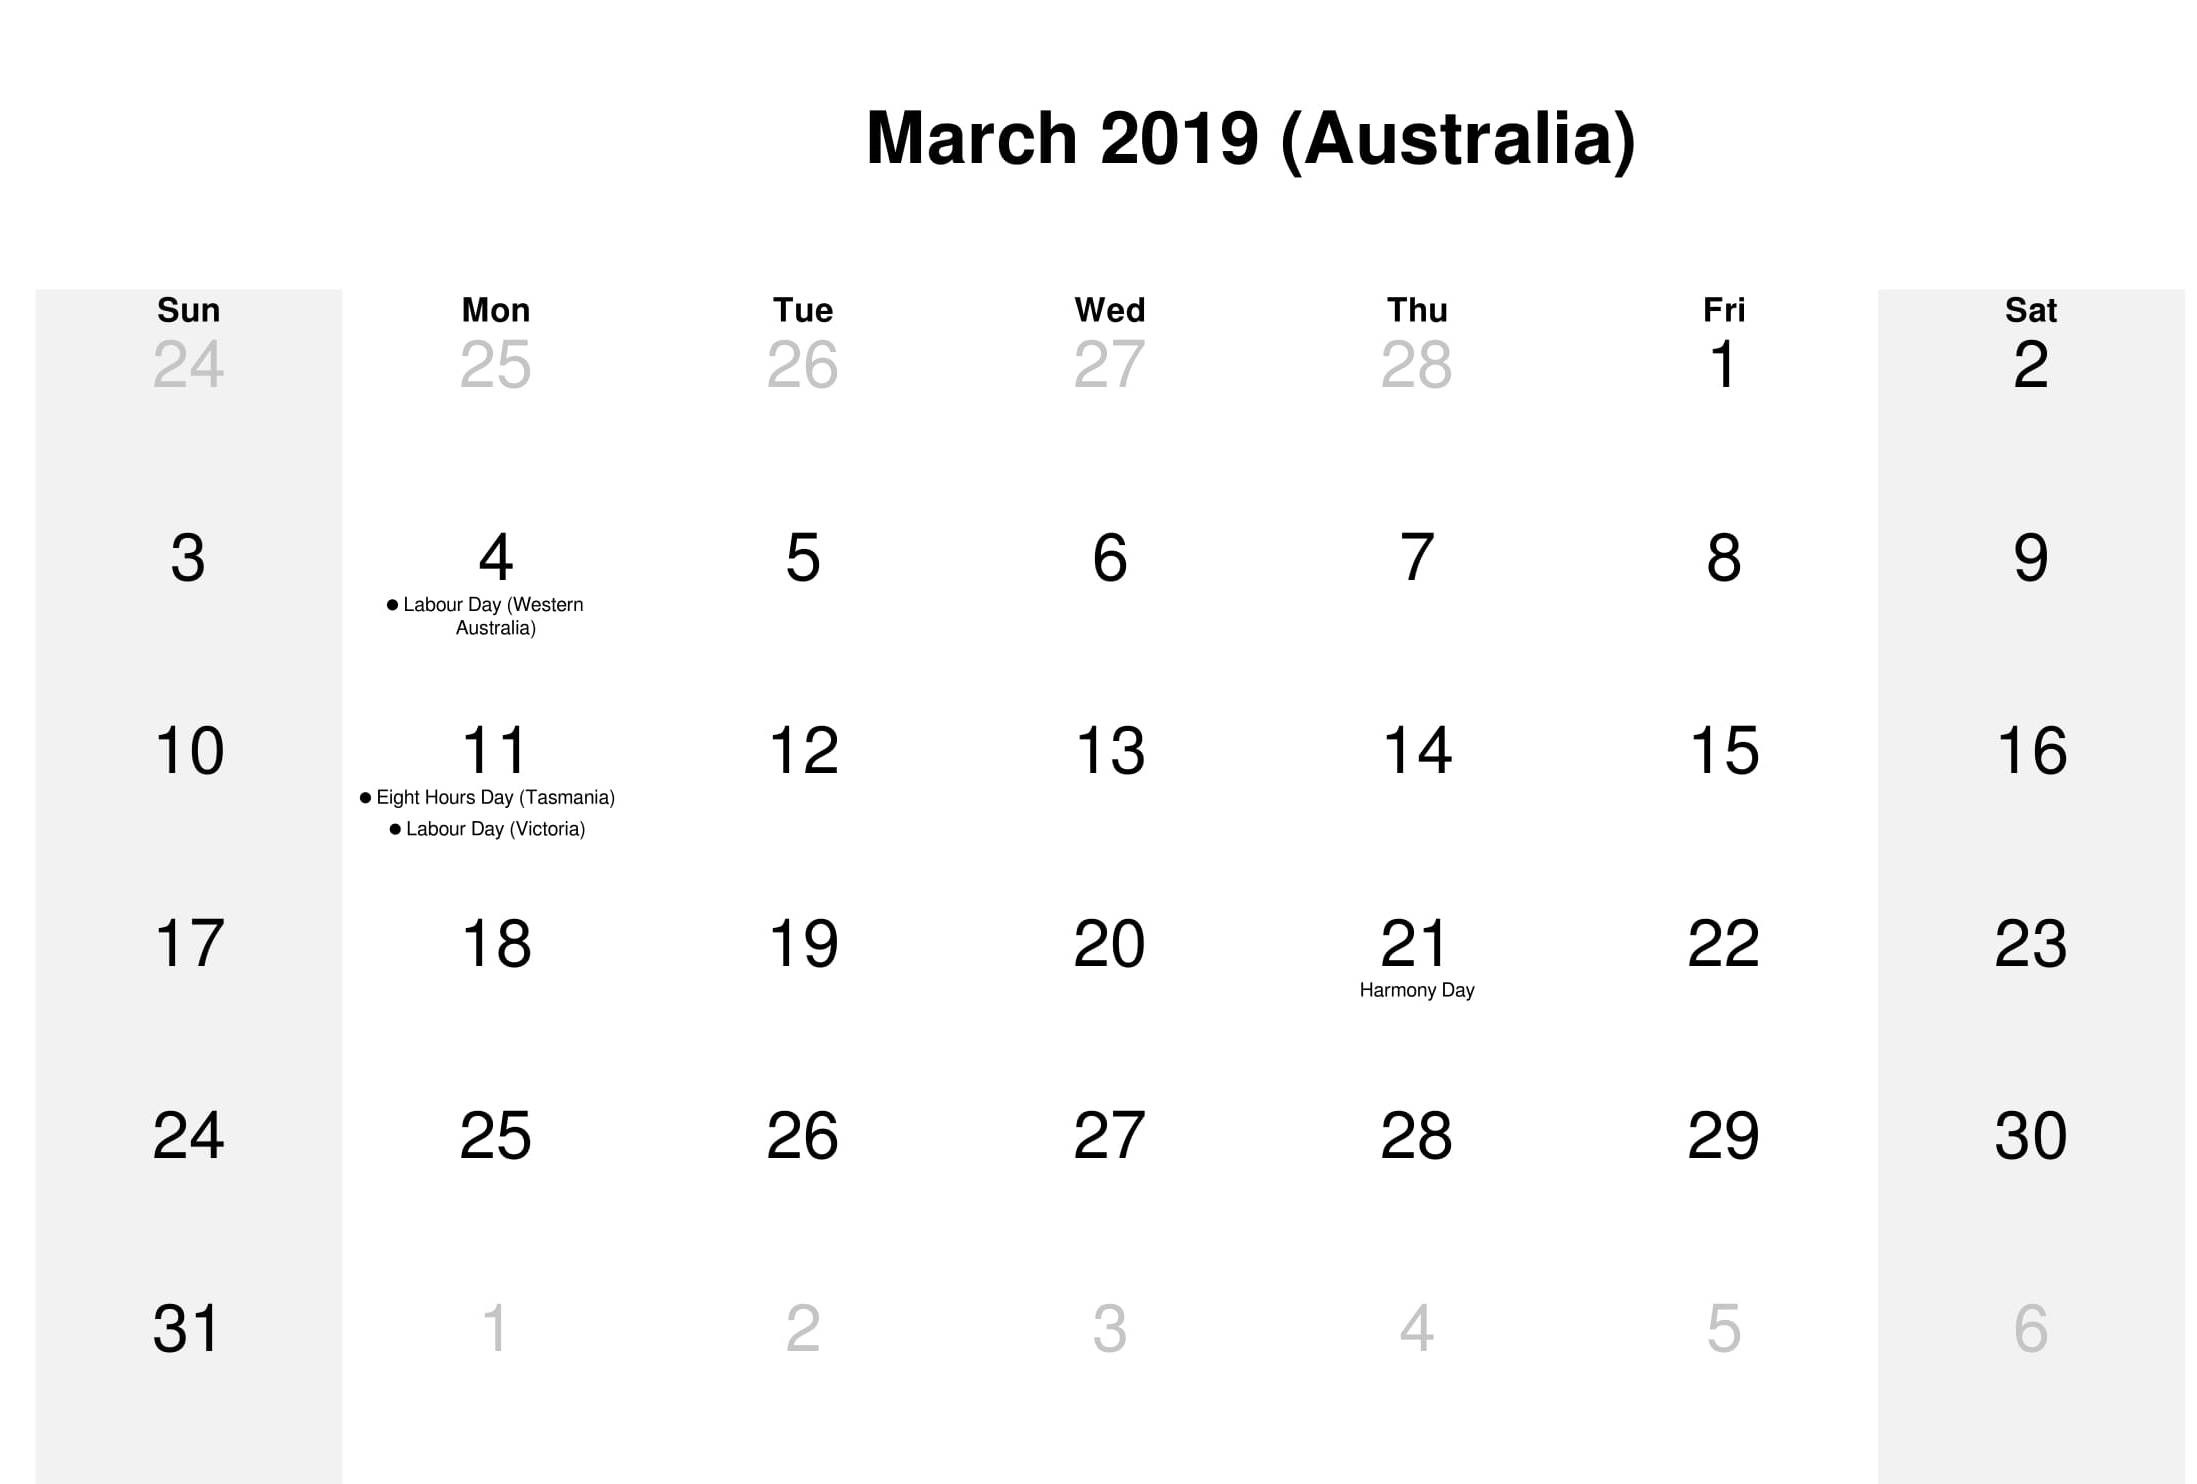 March 2019 Australia Holidays Calendar